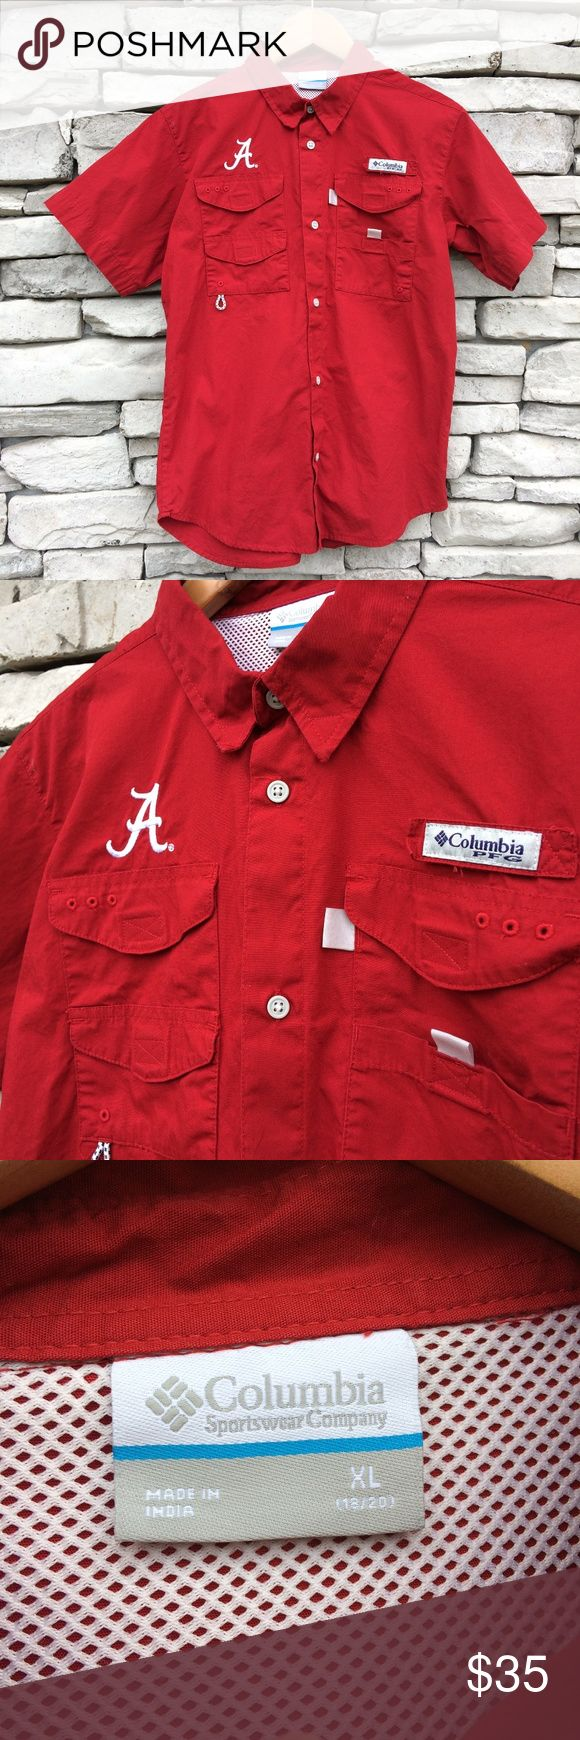 """COLUMBIA Youth XL University of AL PFG Shirt Size XL Youth Bust 38"""" Length 26"""" Measured flat  Excellent condition Columbia Shirts & Tops Button Down Shirts"""